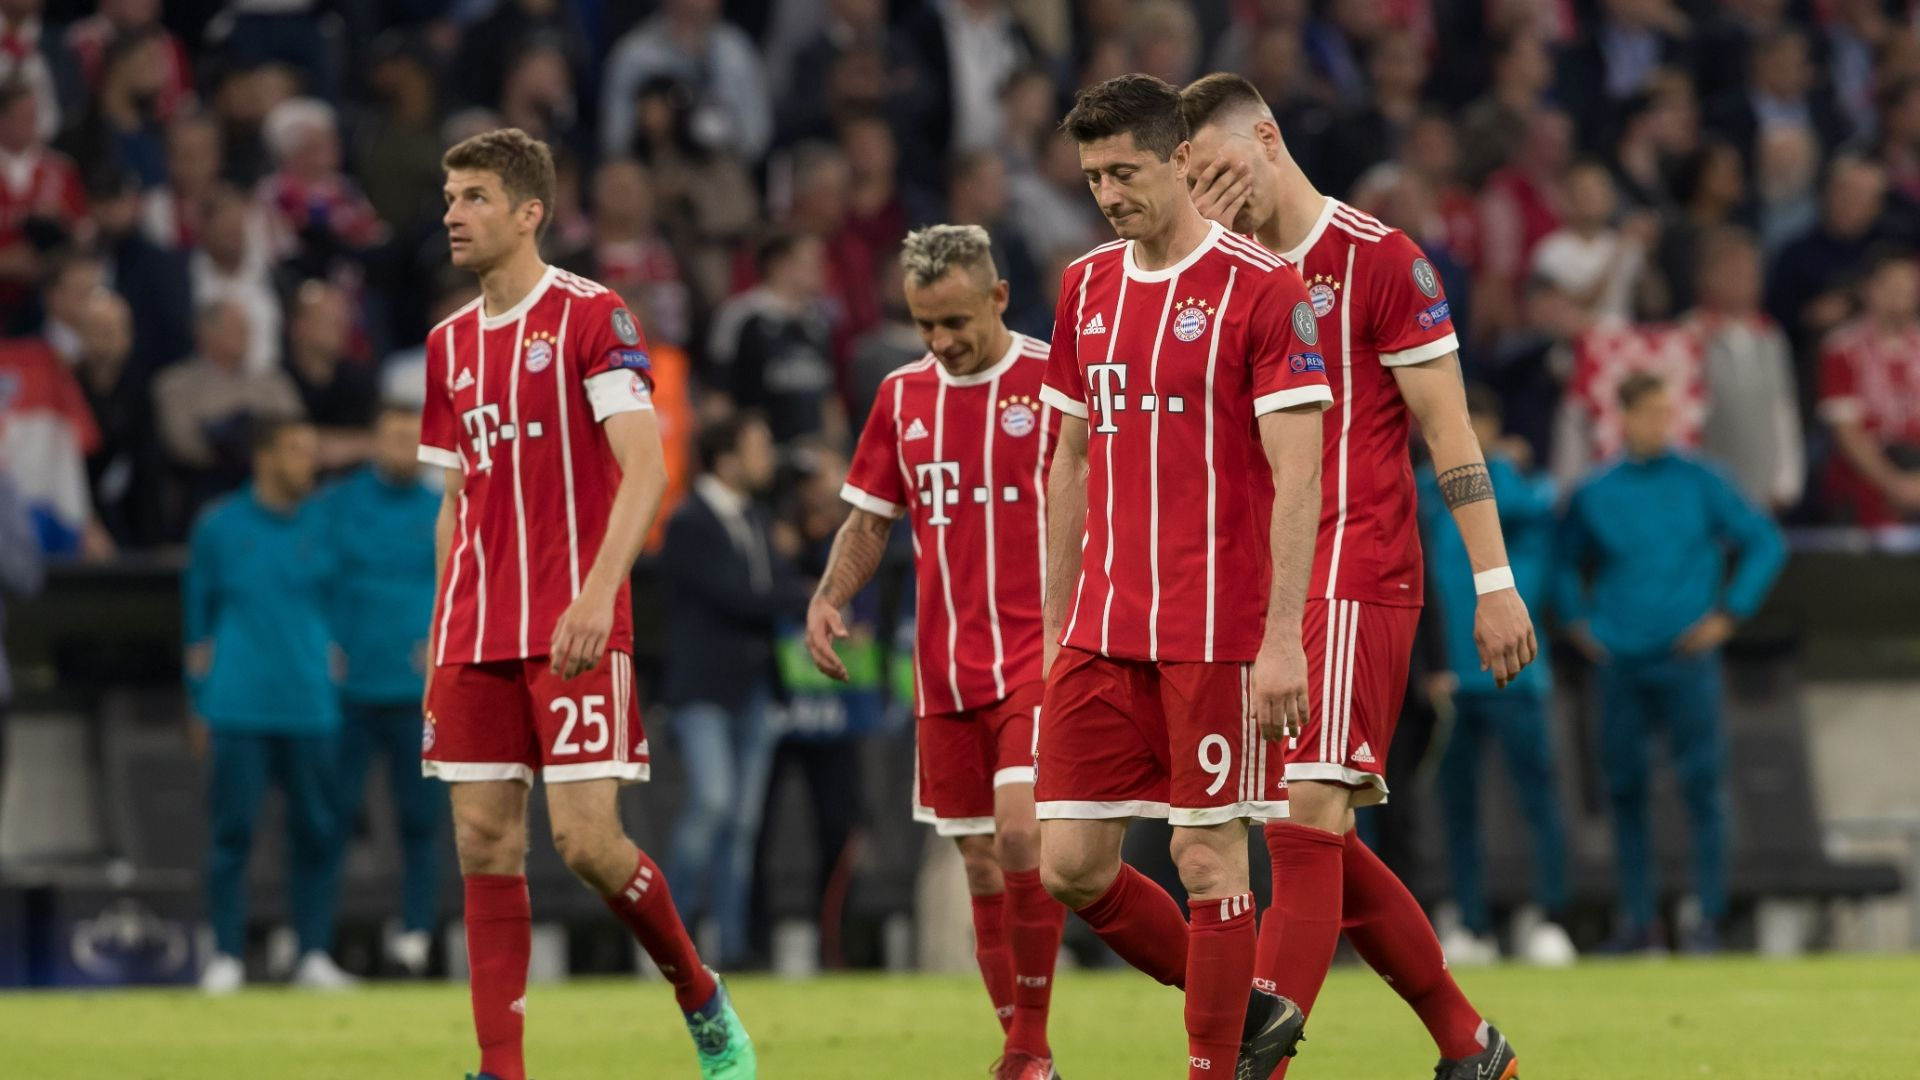 Bayern have lost their winning edge